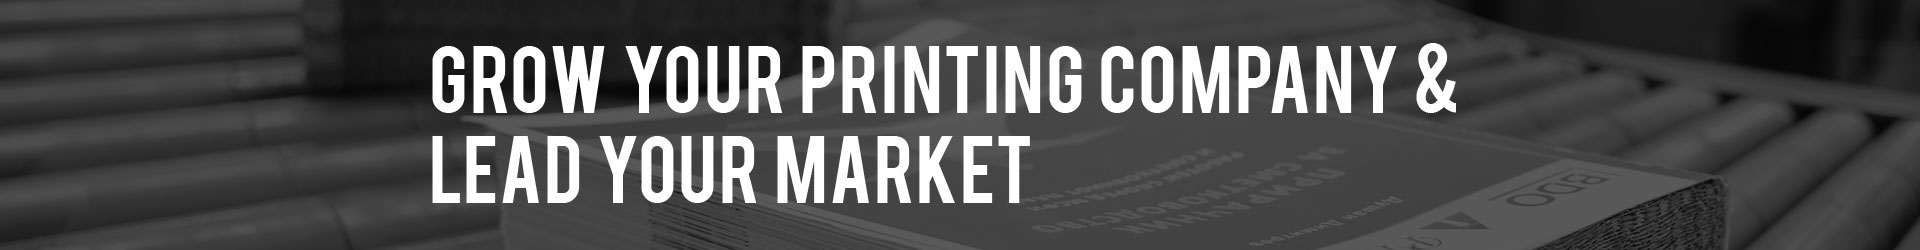 Grow Your Commercial Printing Company through Digital Marketing